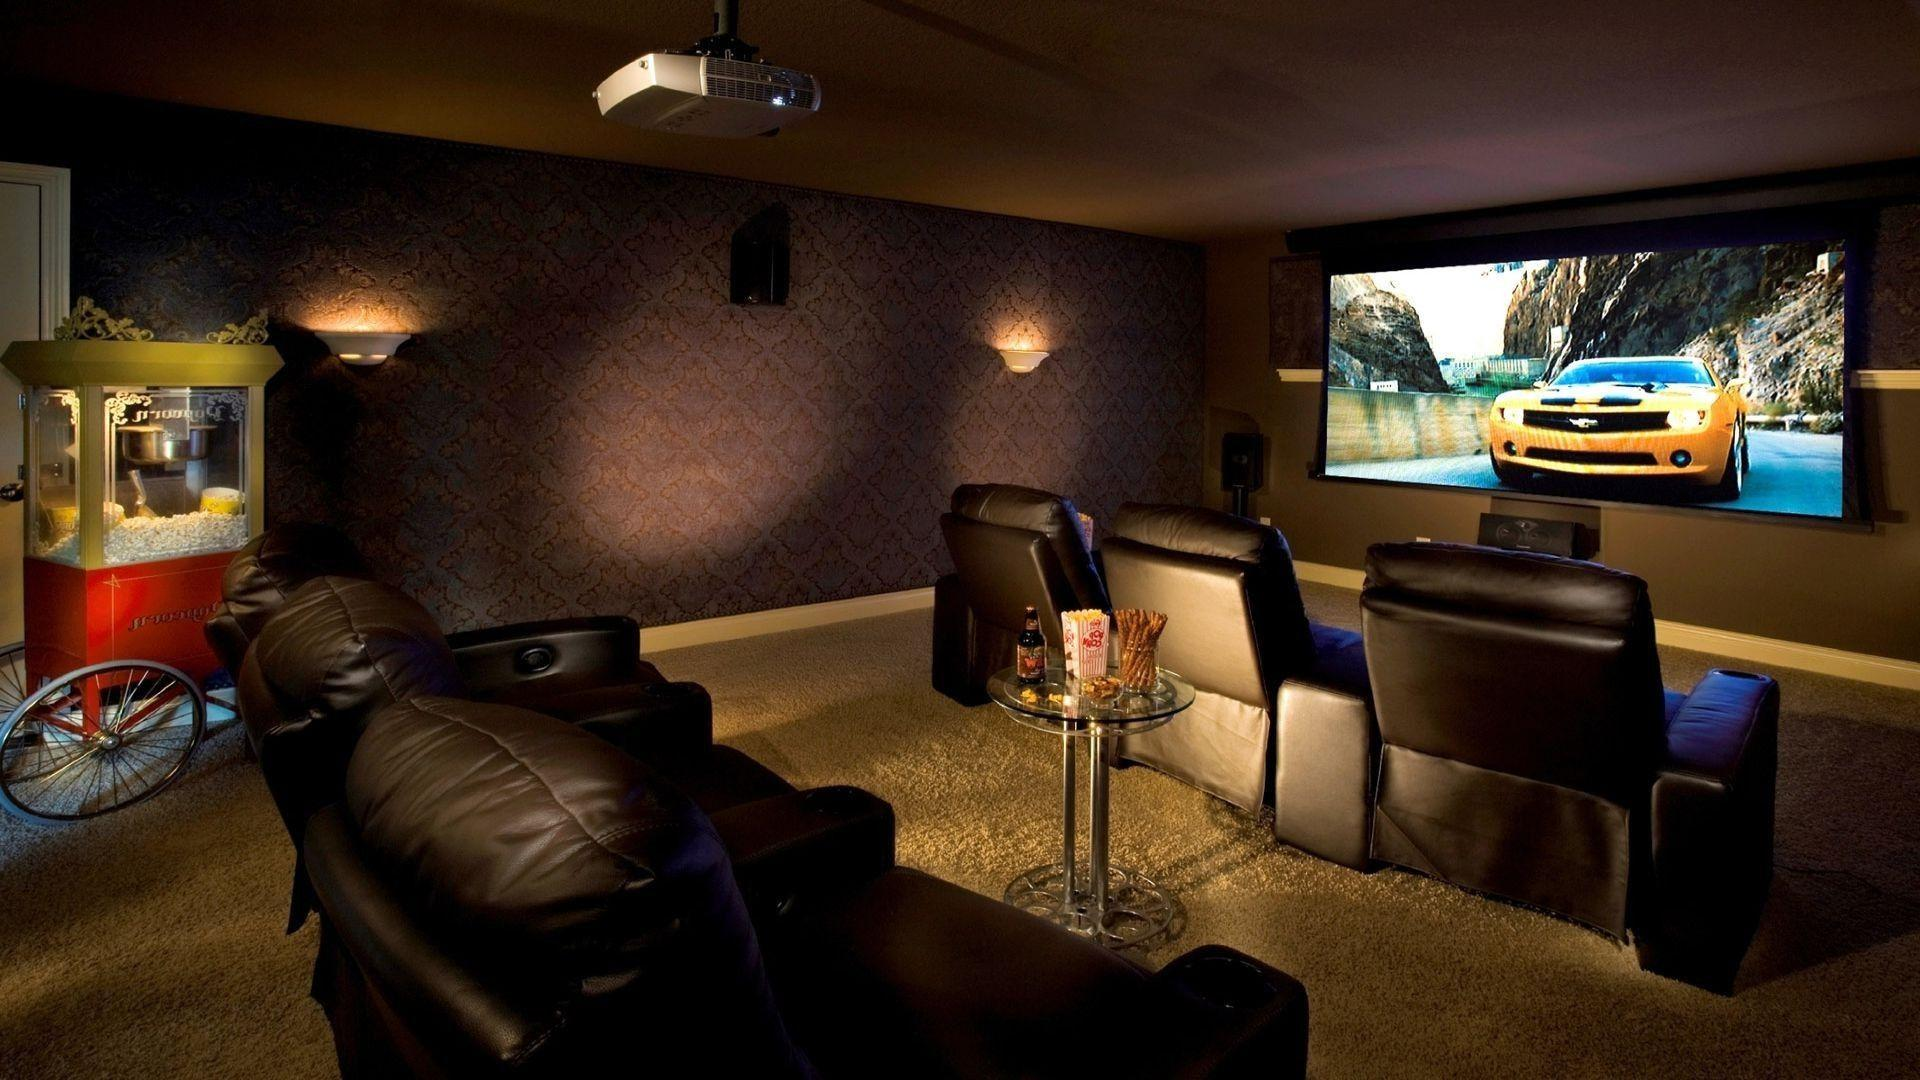 Home cinema wallpapers wallpaper cave for Wallpaper home cinema